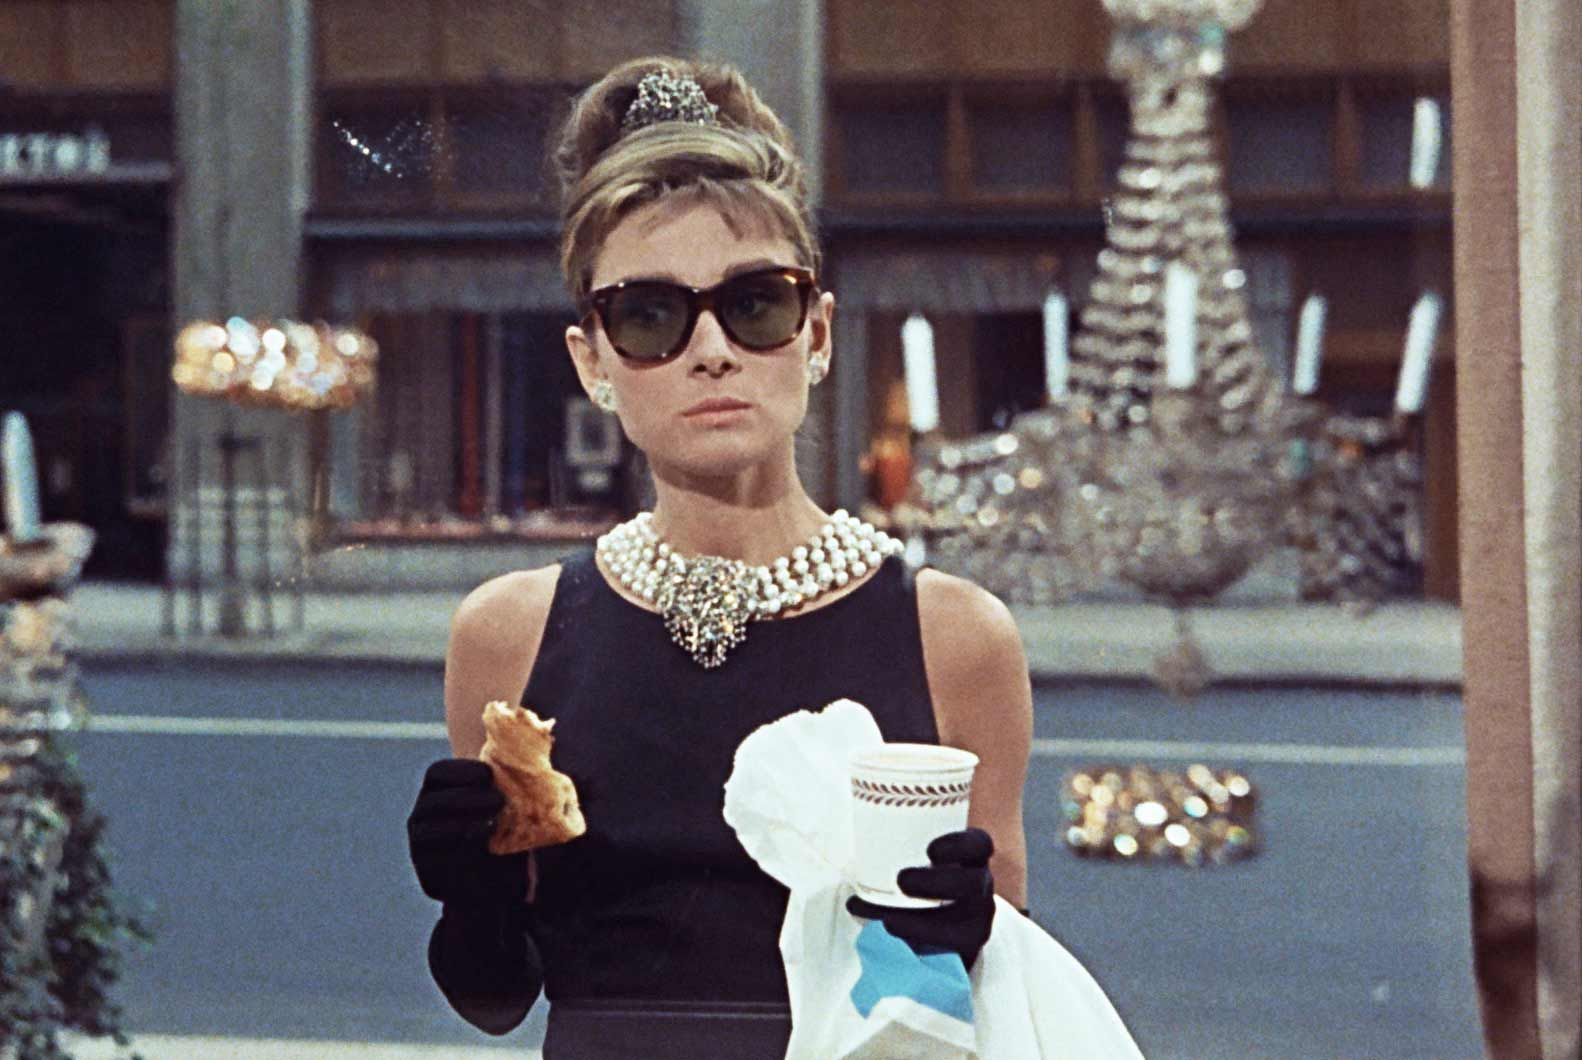 Sunglasses the 20th century 39 s coolest accessory for Breakfast at tiffany s menu